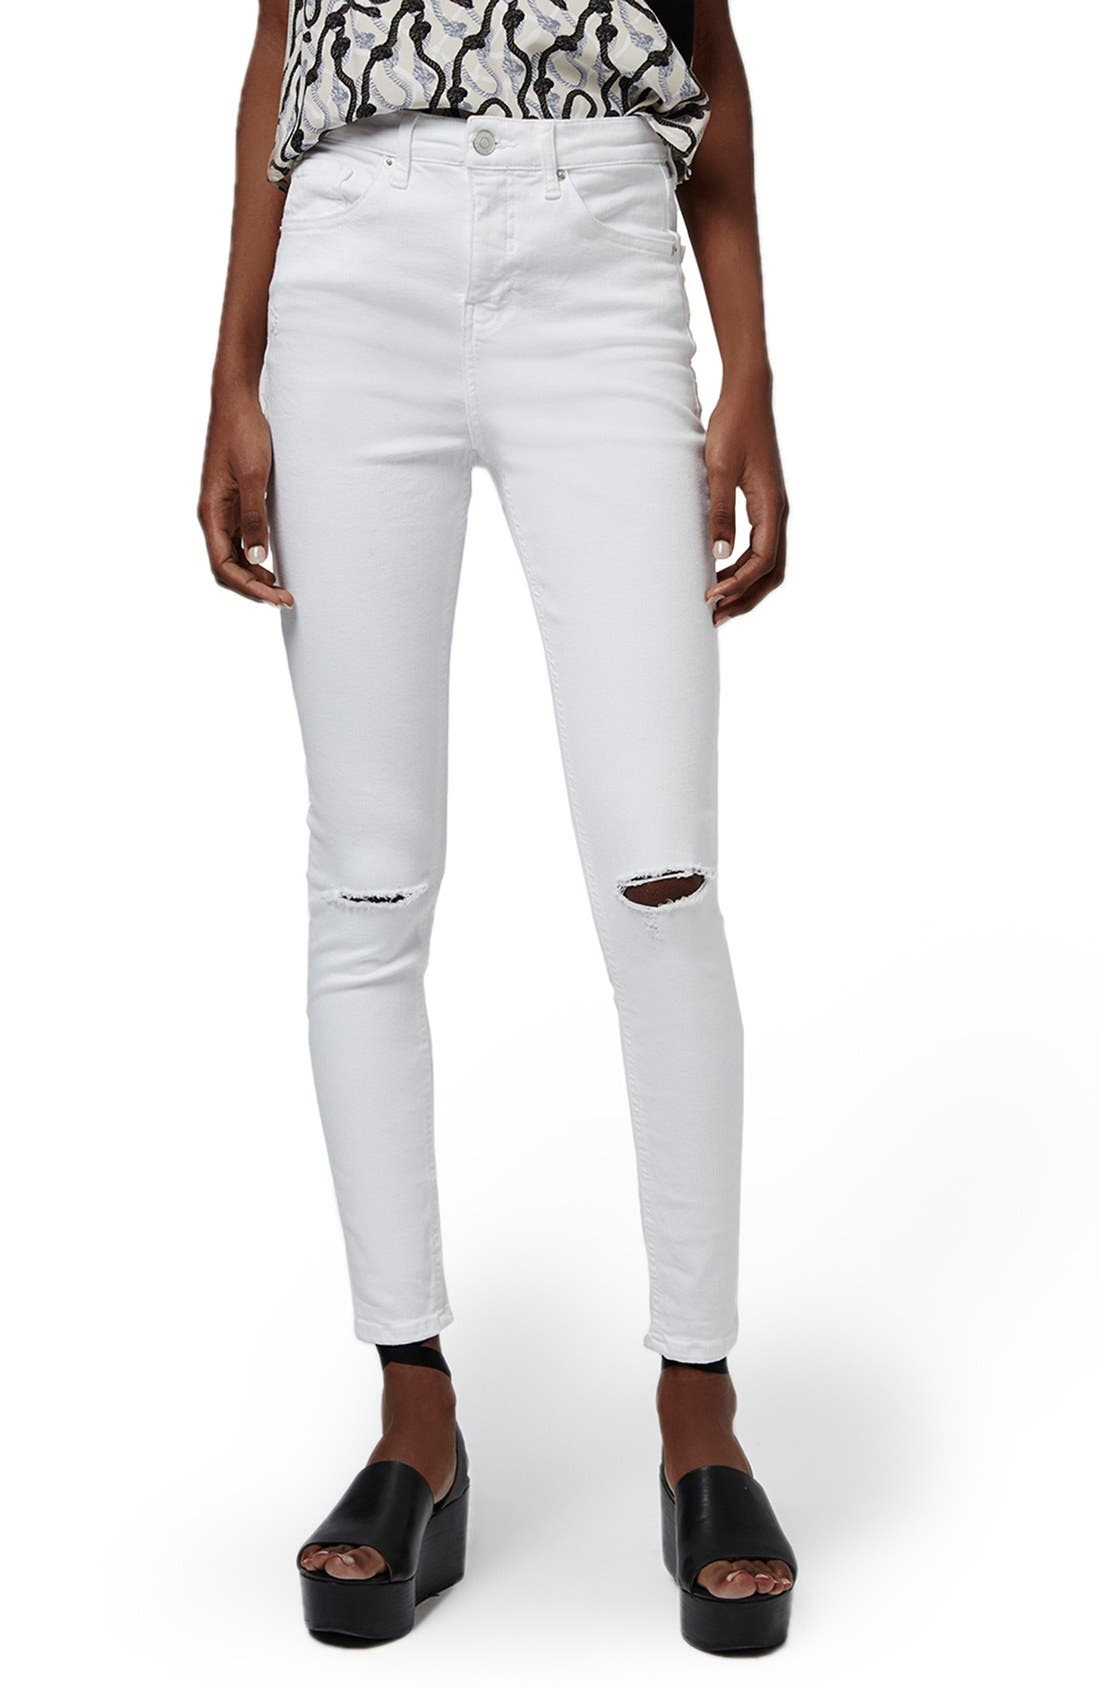 Alternate Image 1 Selected - Topshop 'Jamie' Ripped High Rise Ankle Skinny Jeans